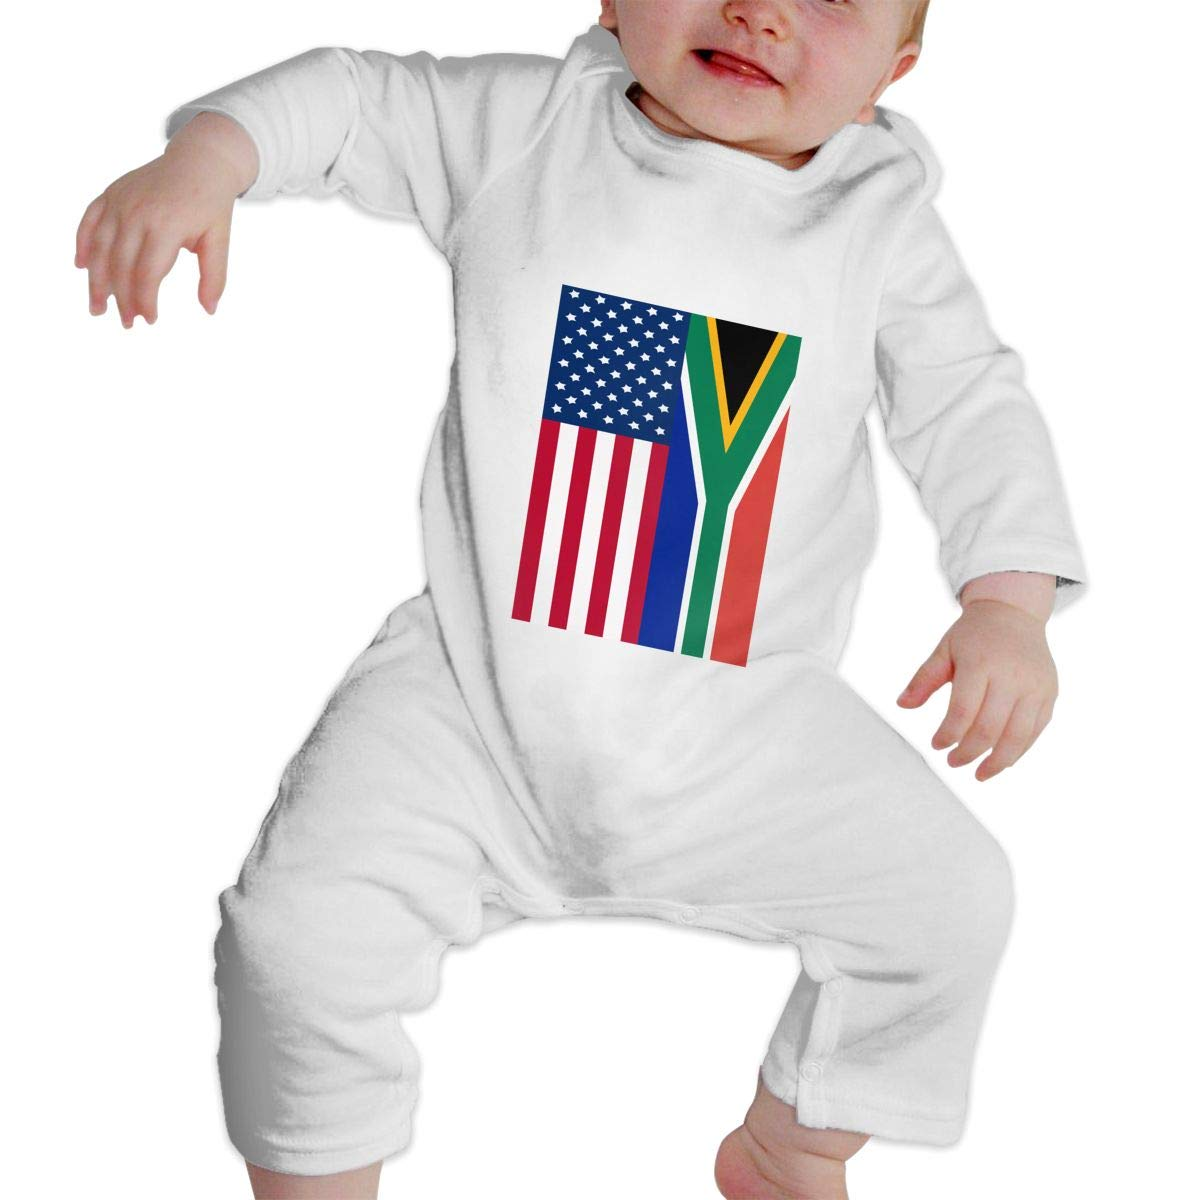 A1BY-5US Newborn Baby Boys Girls Cotton Long Sleeve South Africa and American Flag Jumpsuit Romper